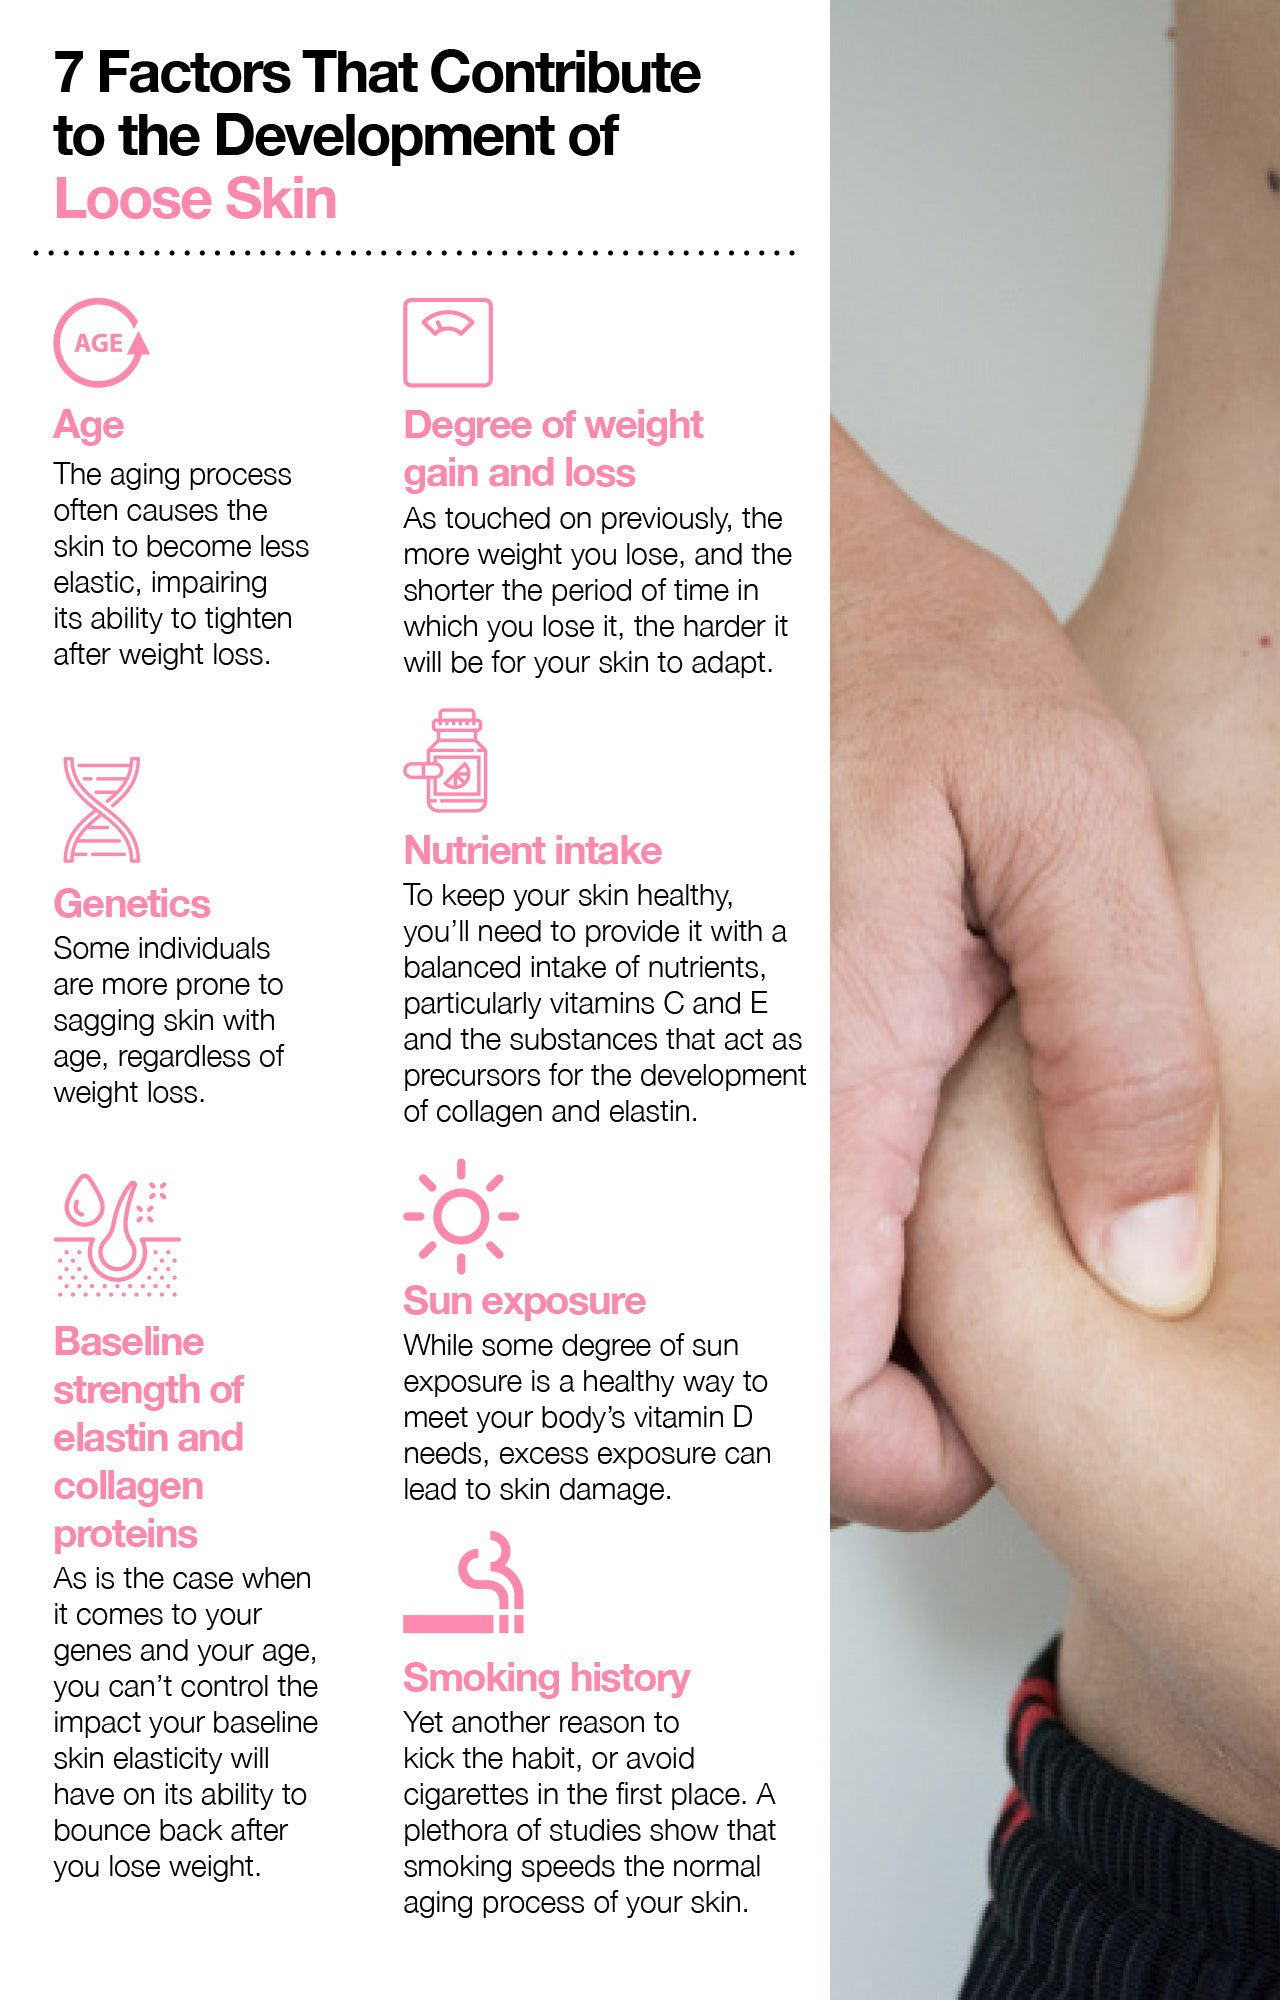 7 Factors That Contribute to the Development of Loose Skin